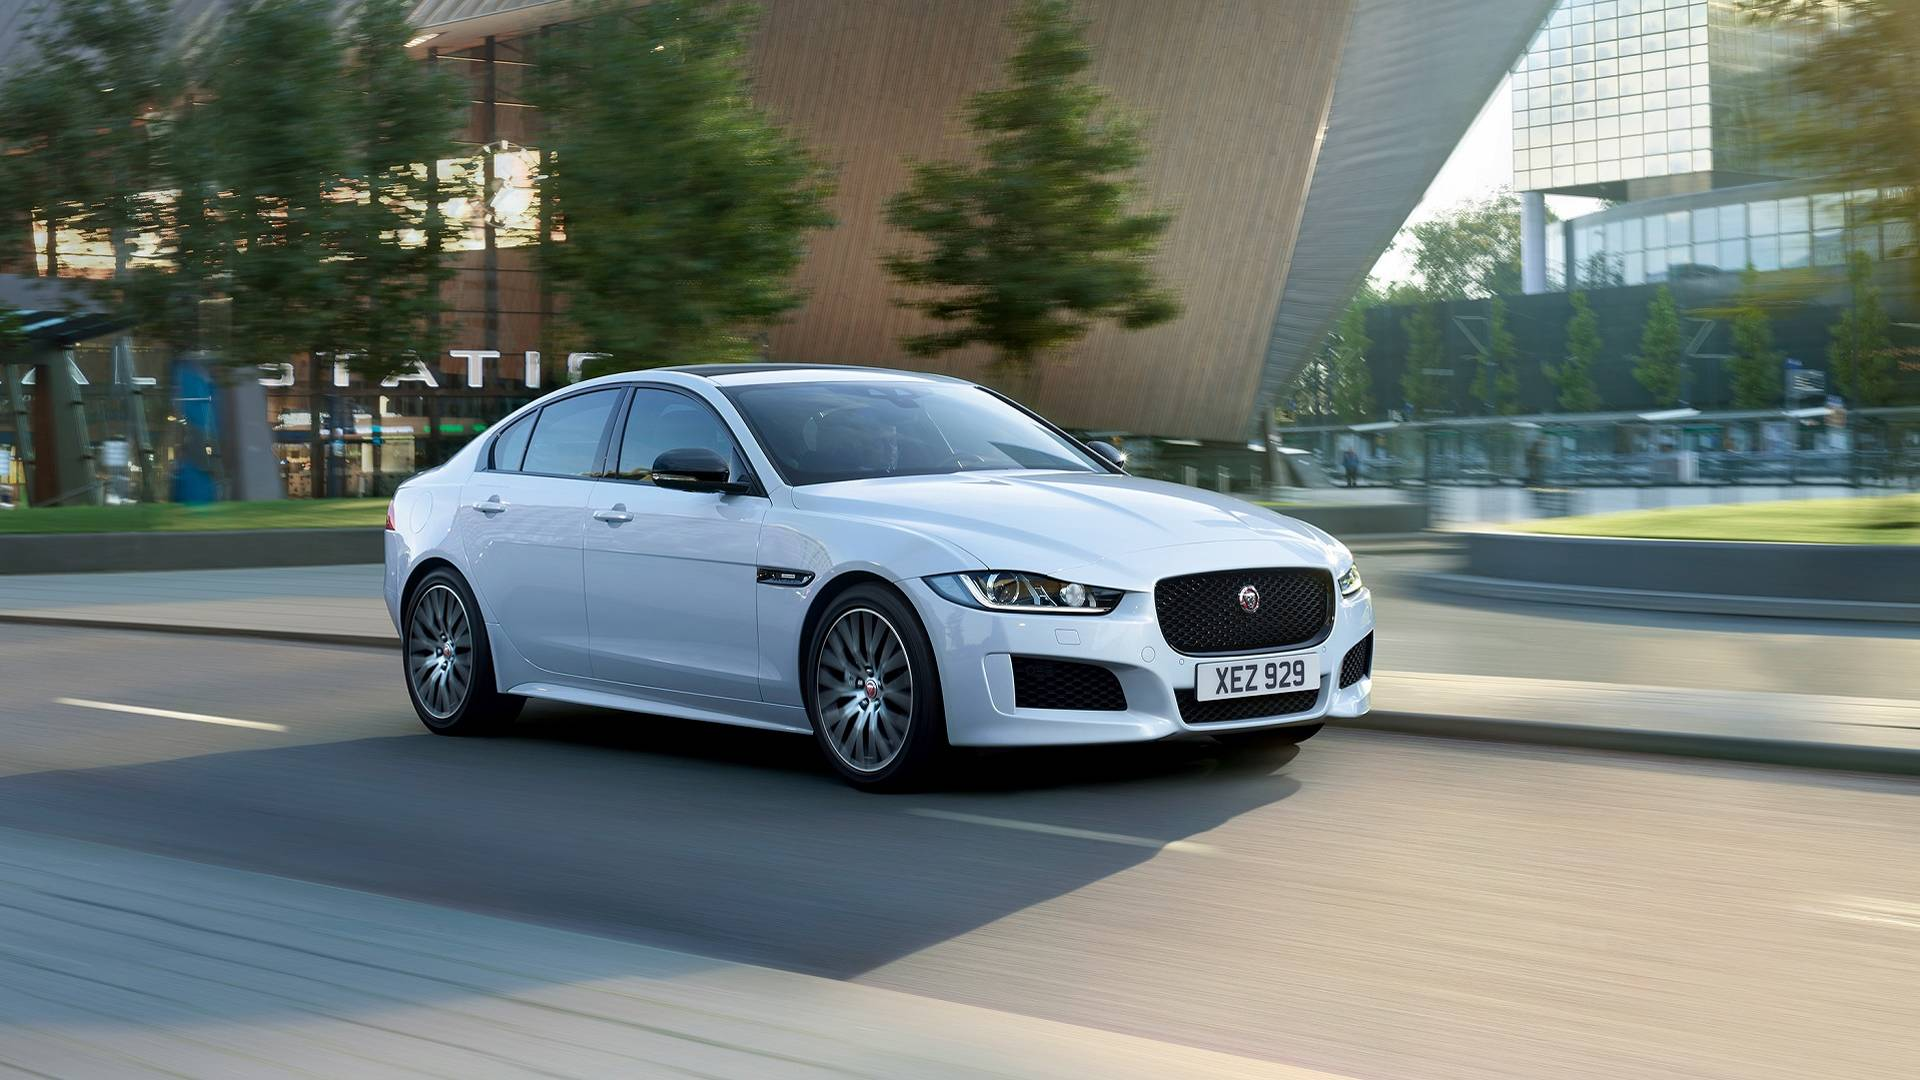 2019-jaguar-xe-landmark-edition